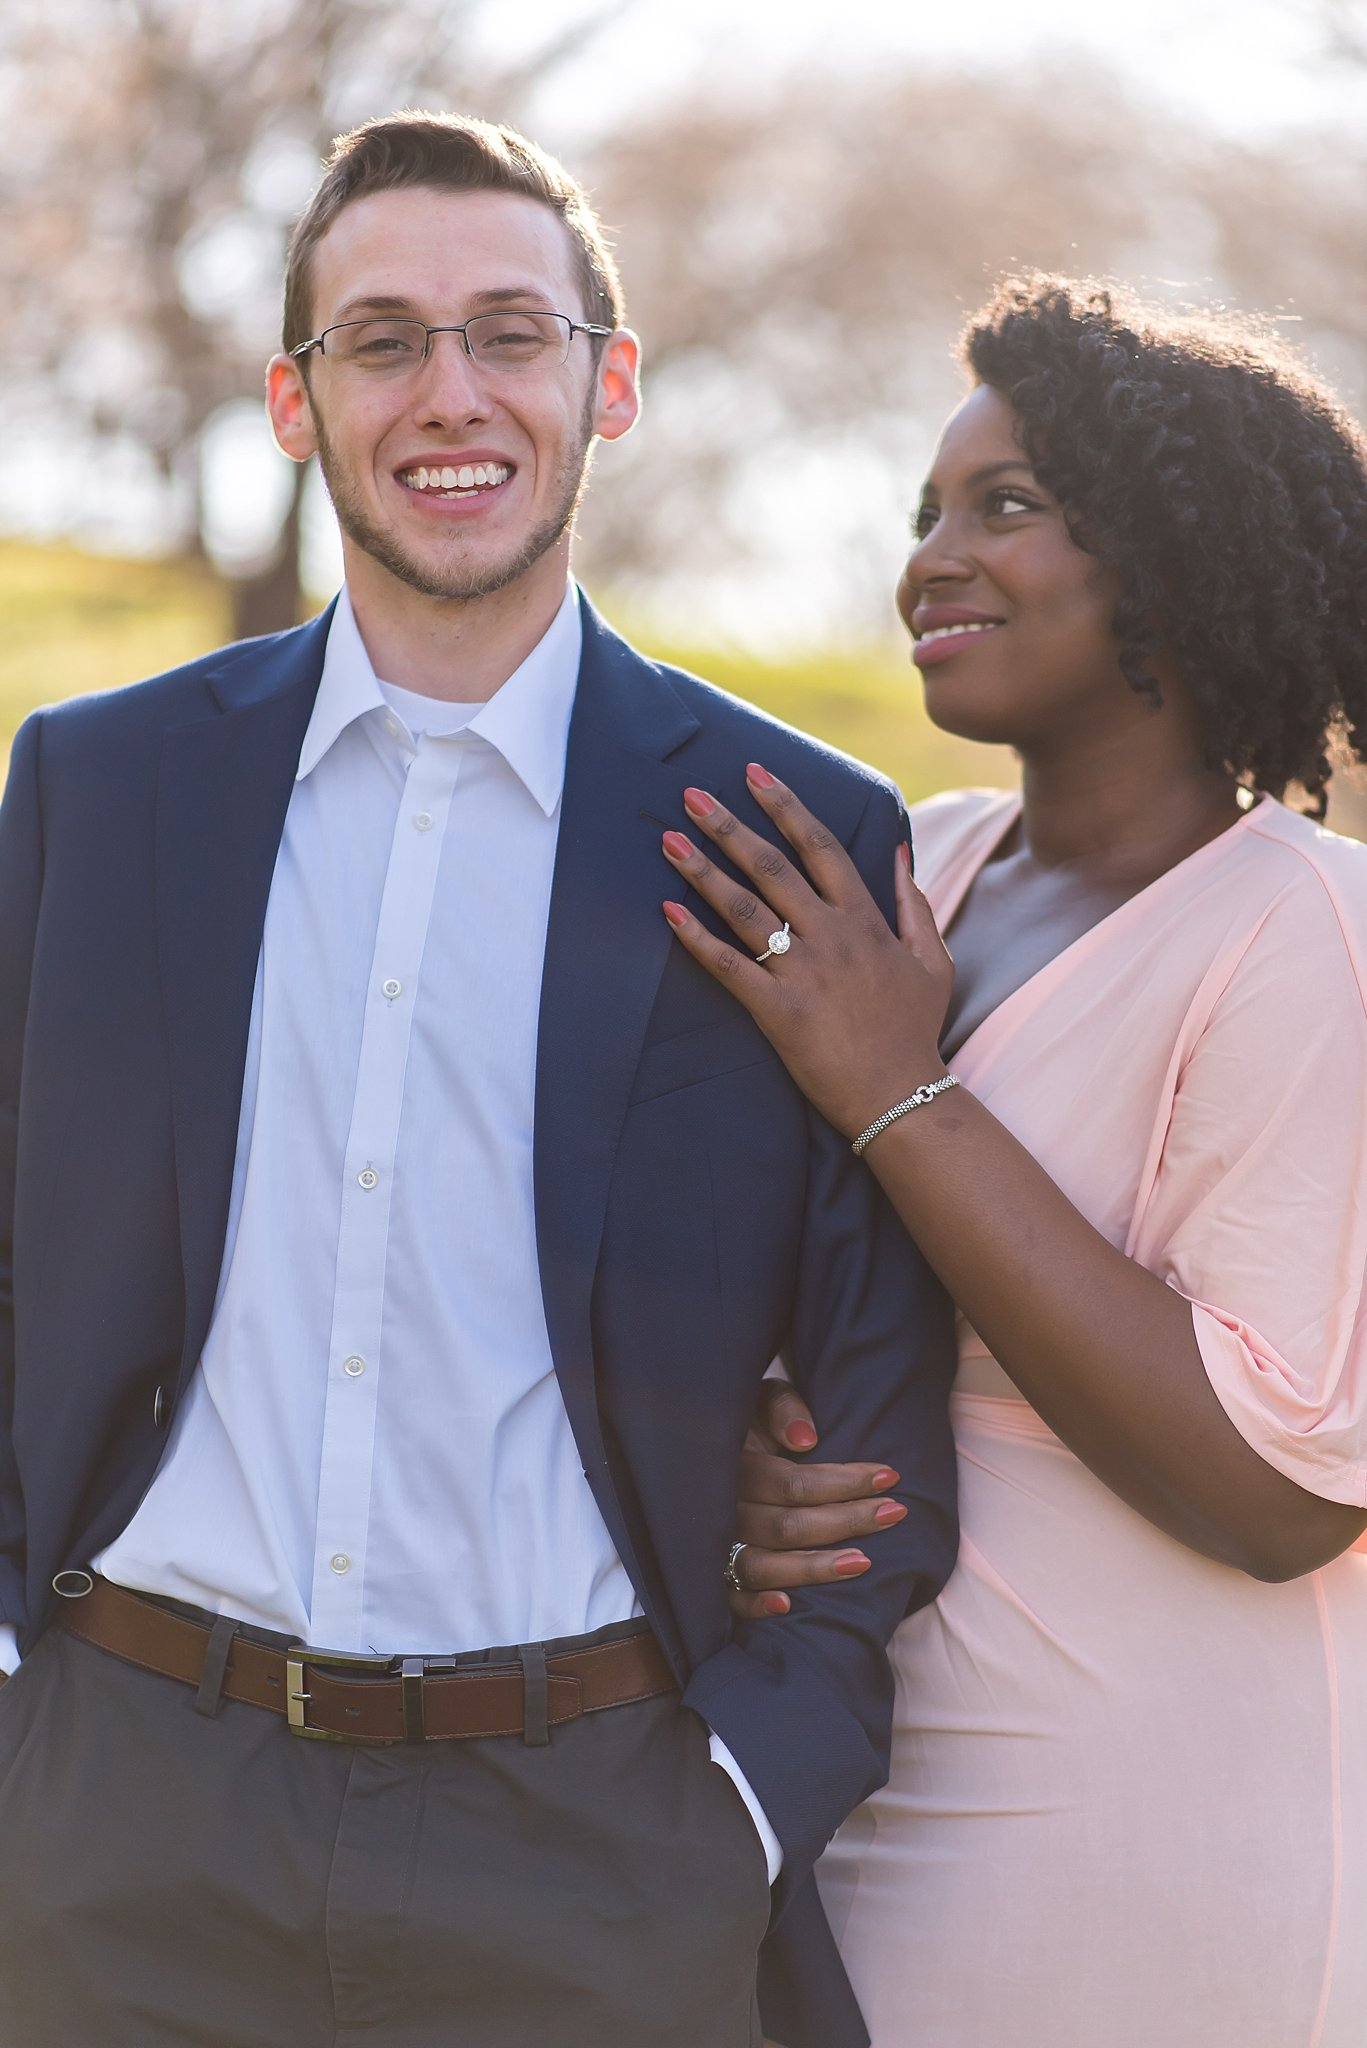 Engagement Photography in Boston